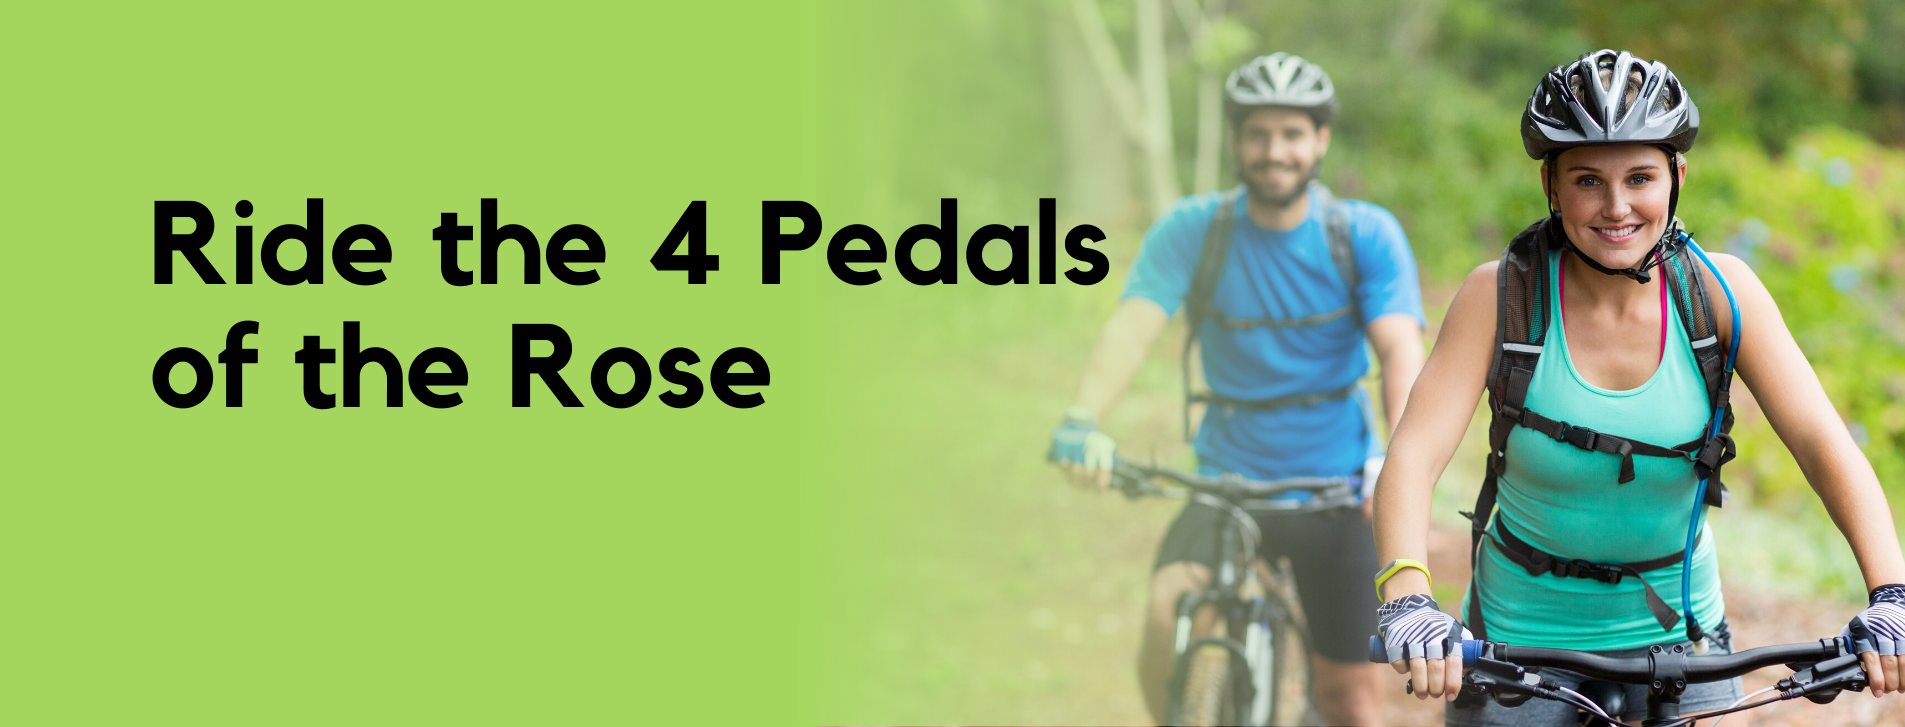 Ride the Four Pedals